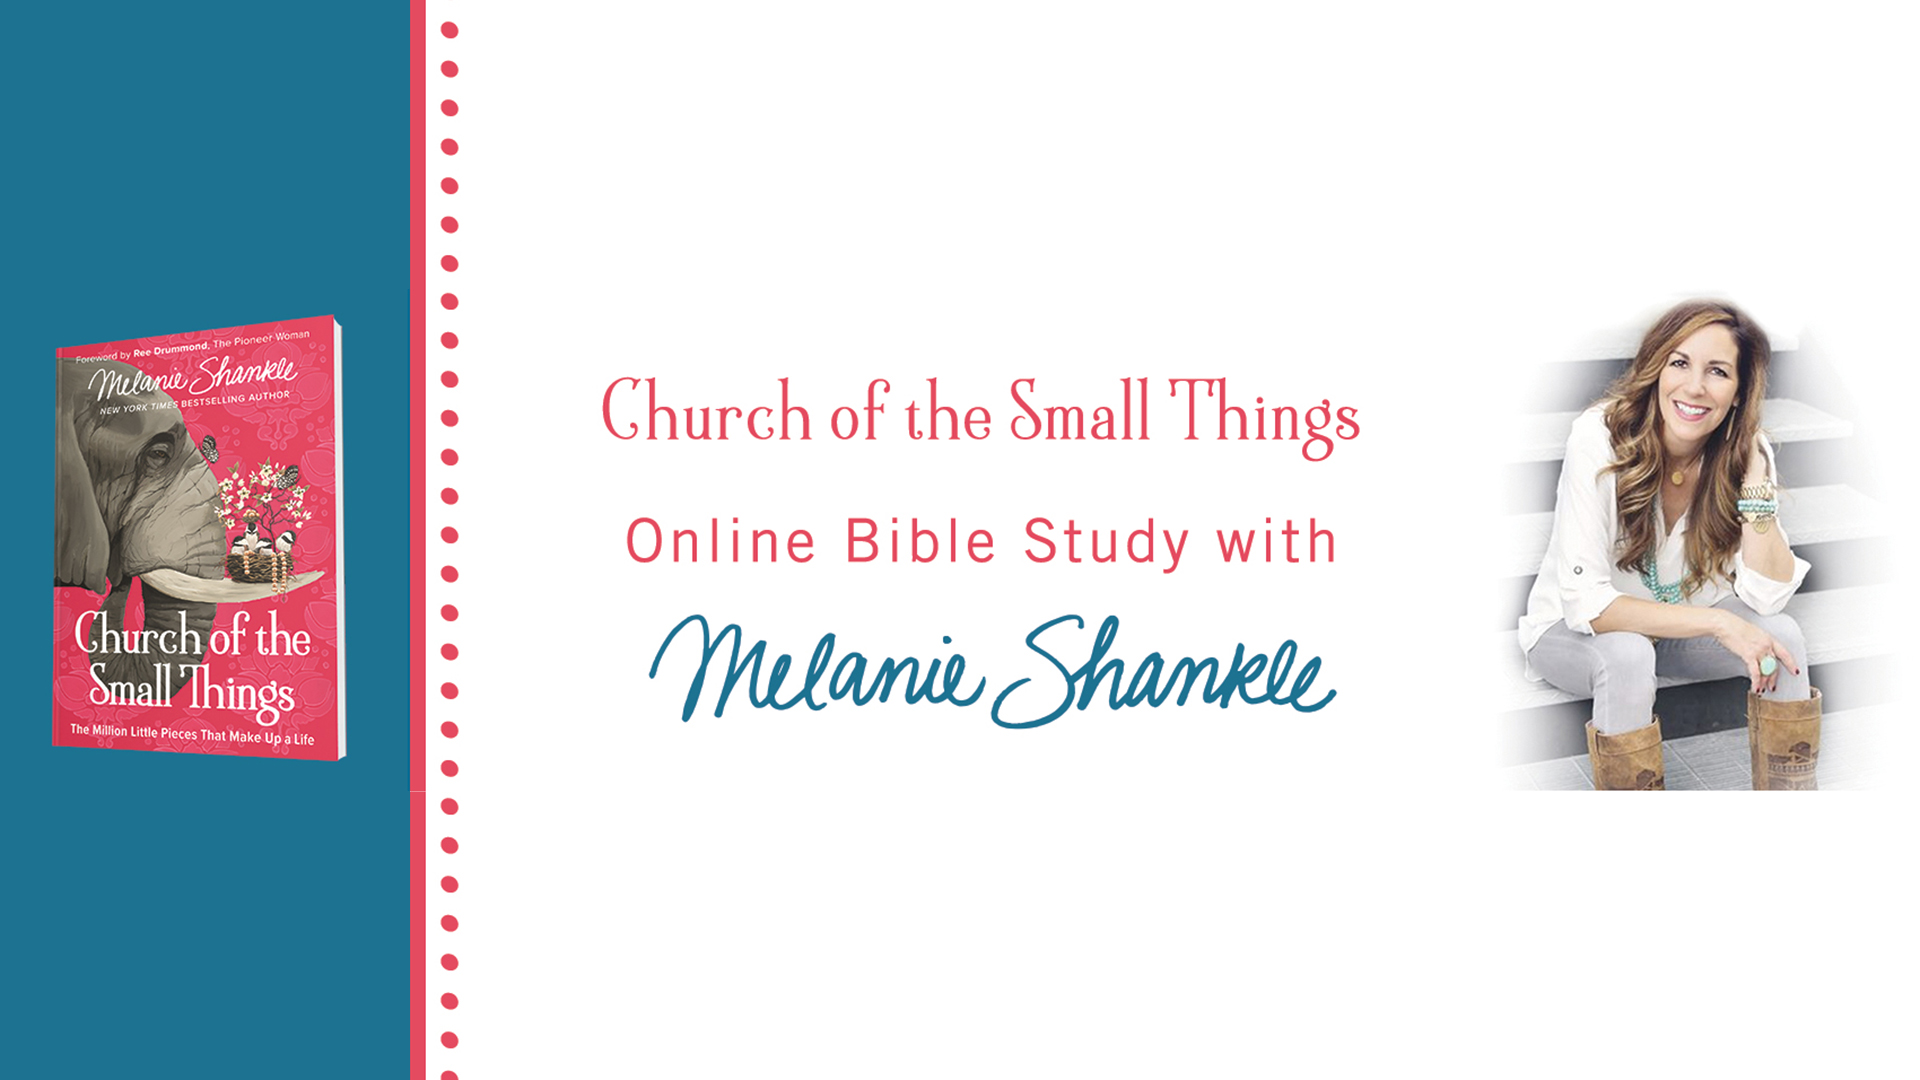 Church of the Small Things Online Bible Study Kickoff